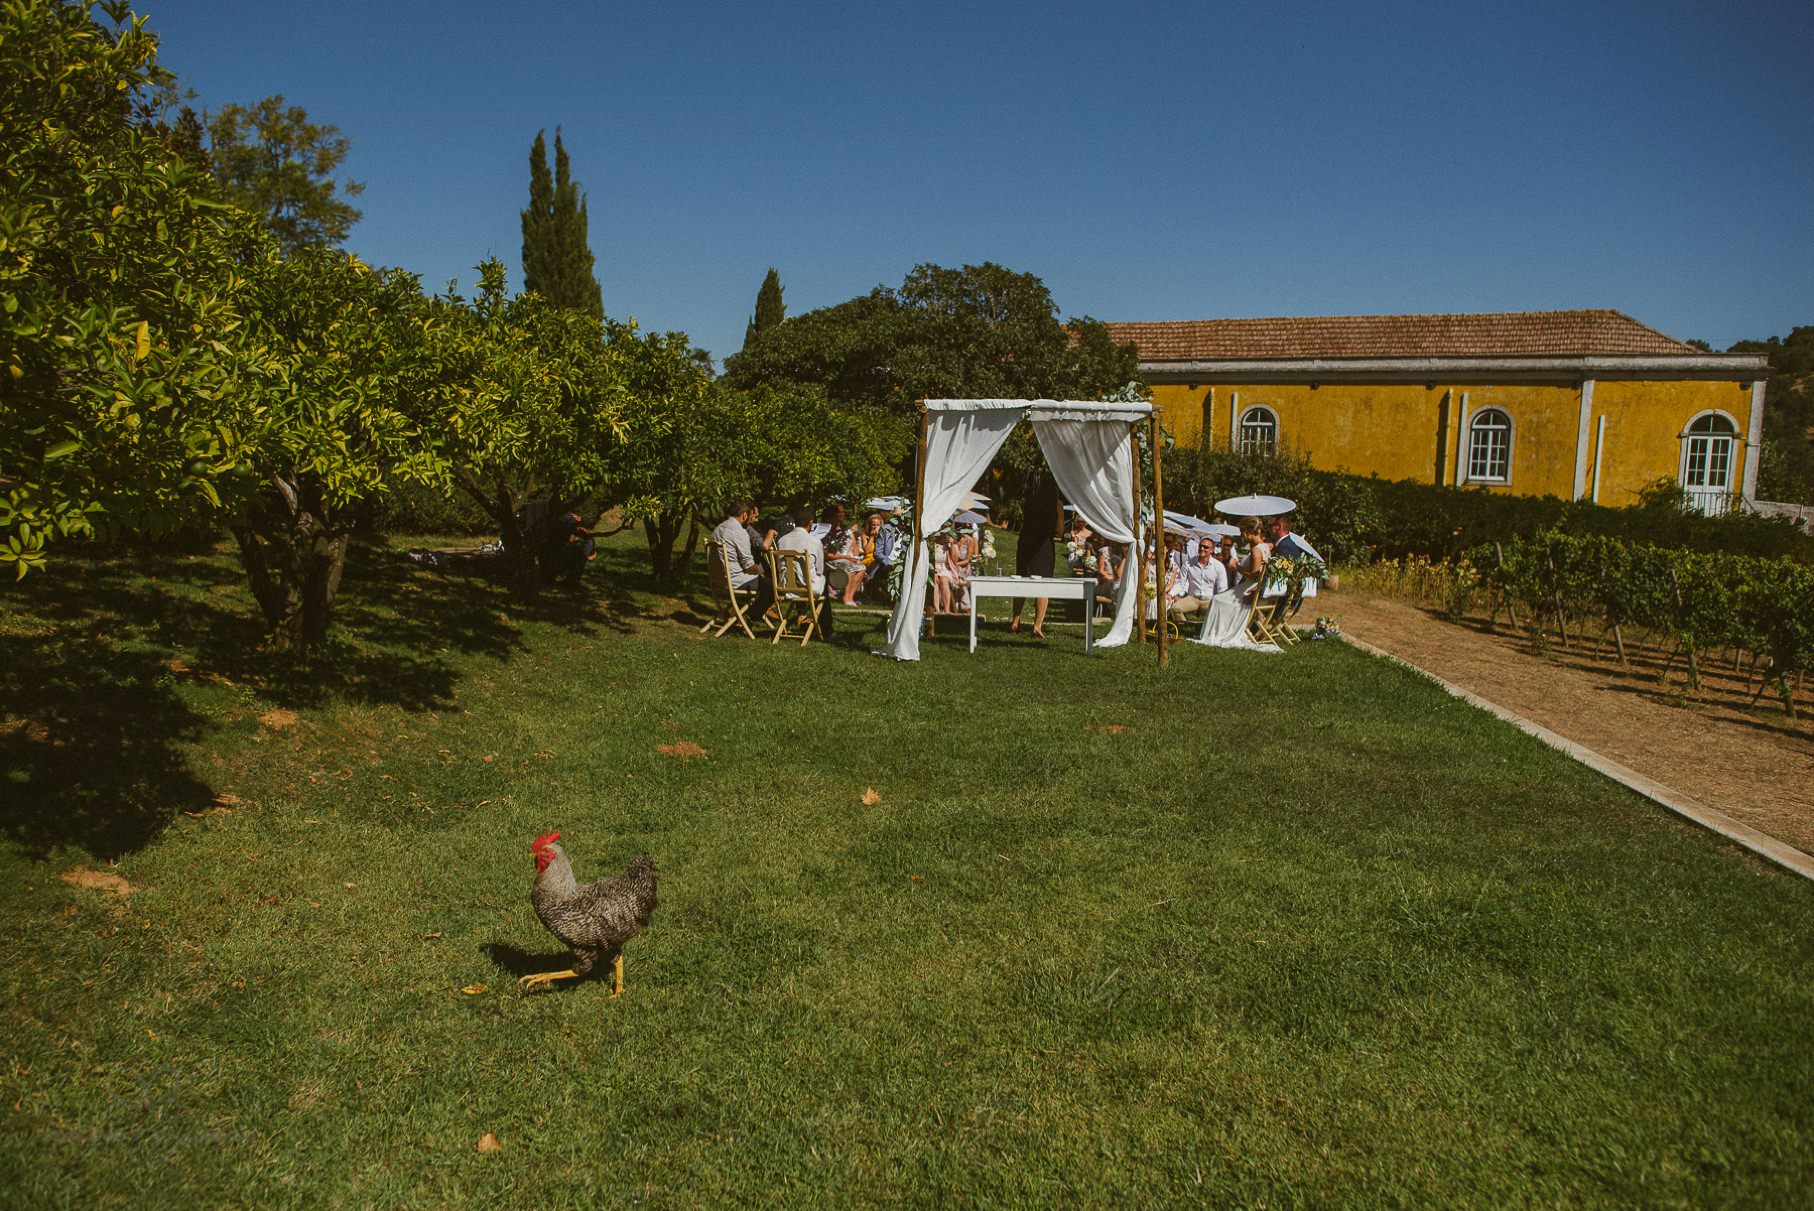 0044 anna olli portugal destination wedding d76 4335 - Hochzeit in Portugal - Quinta de Santa´Ana